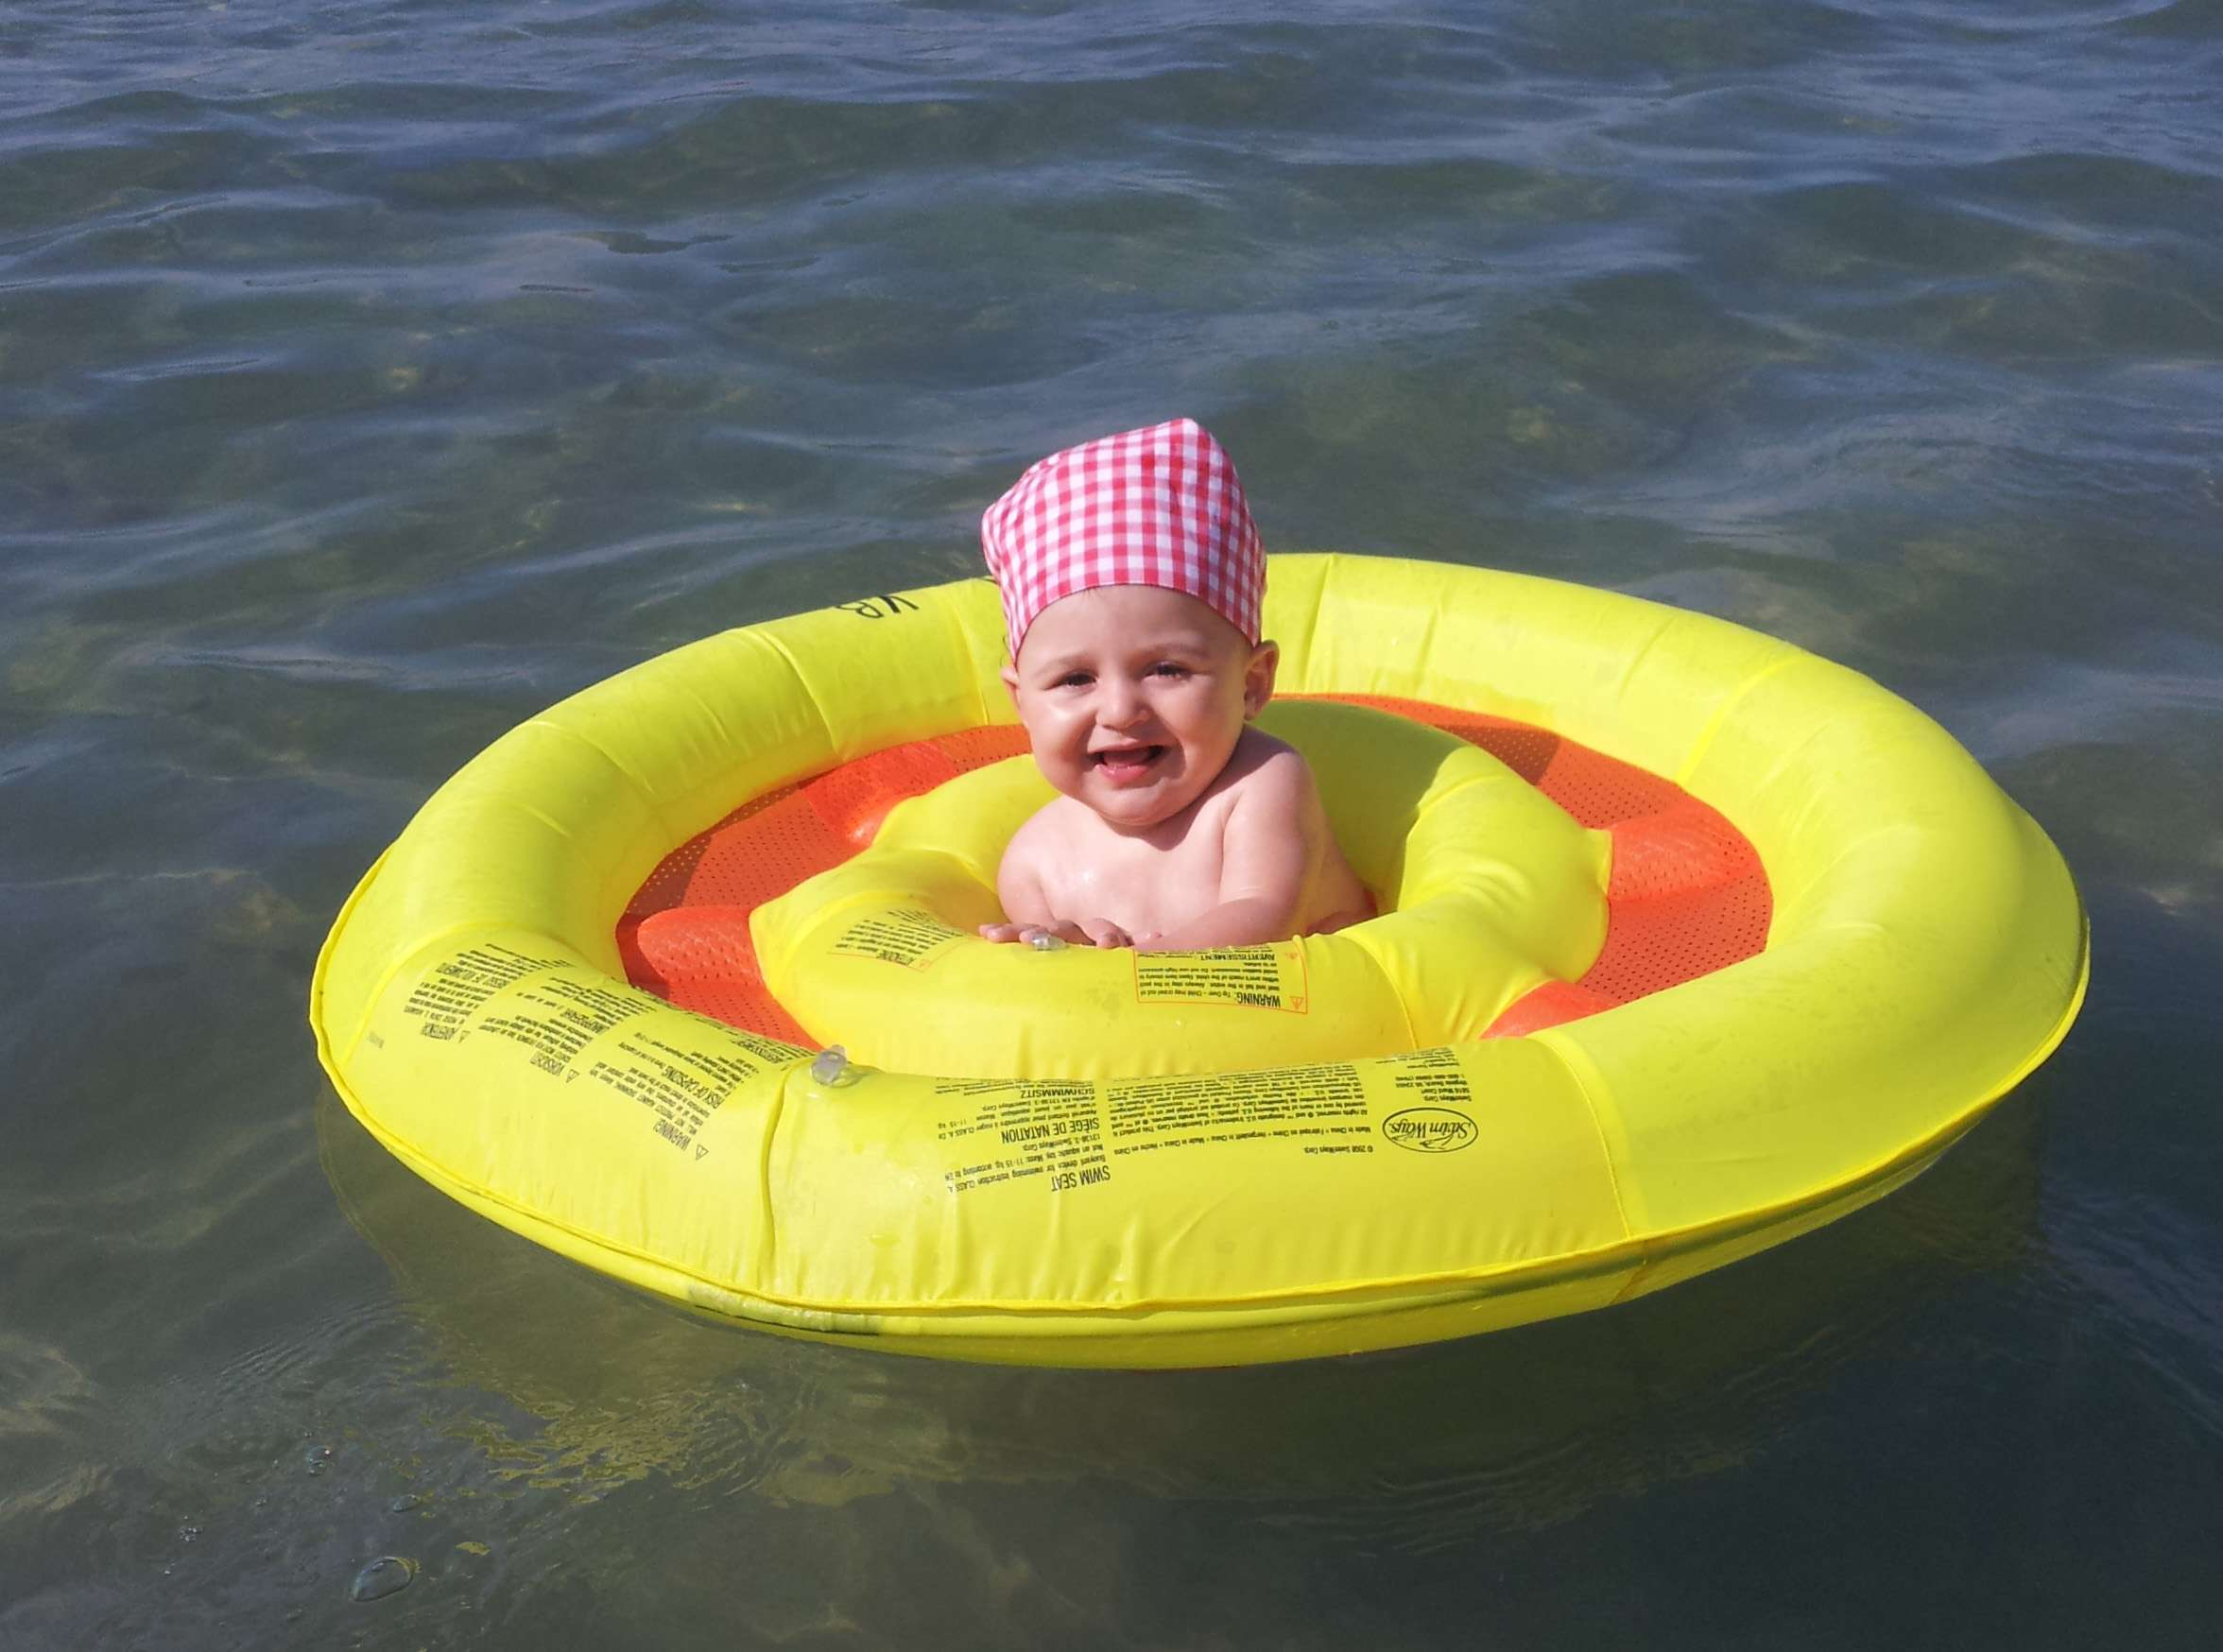 Salvagente baby spring float 1000 piscine - Materassini per piscina ...